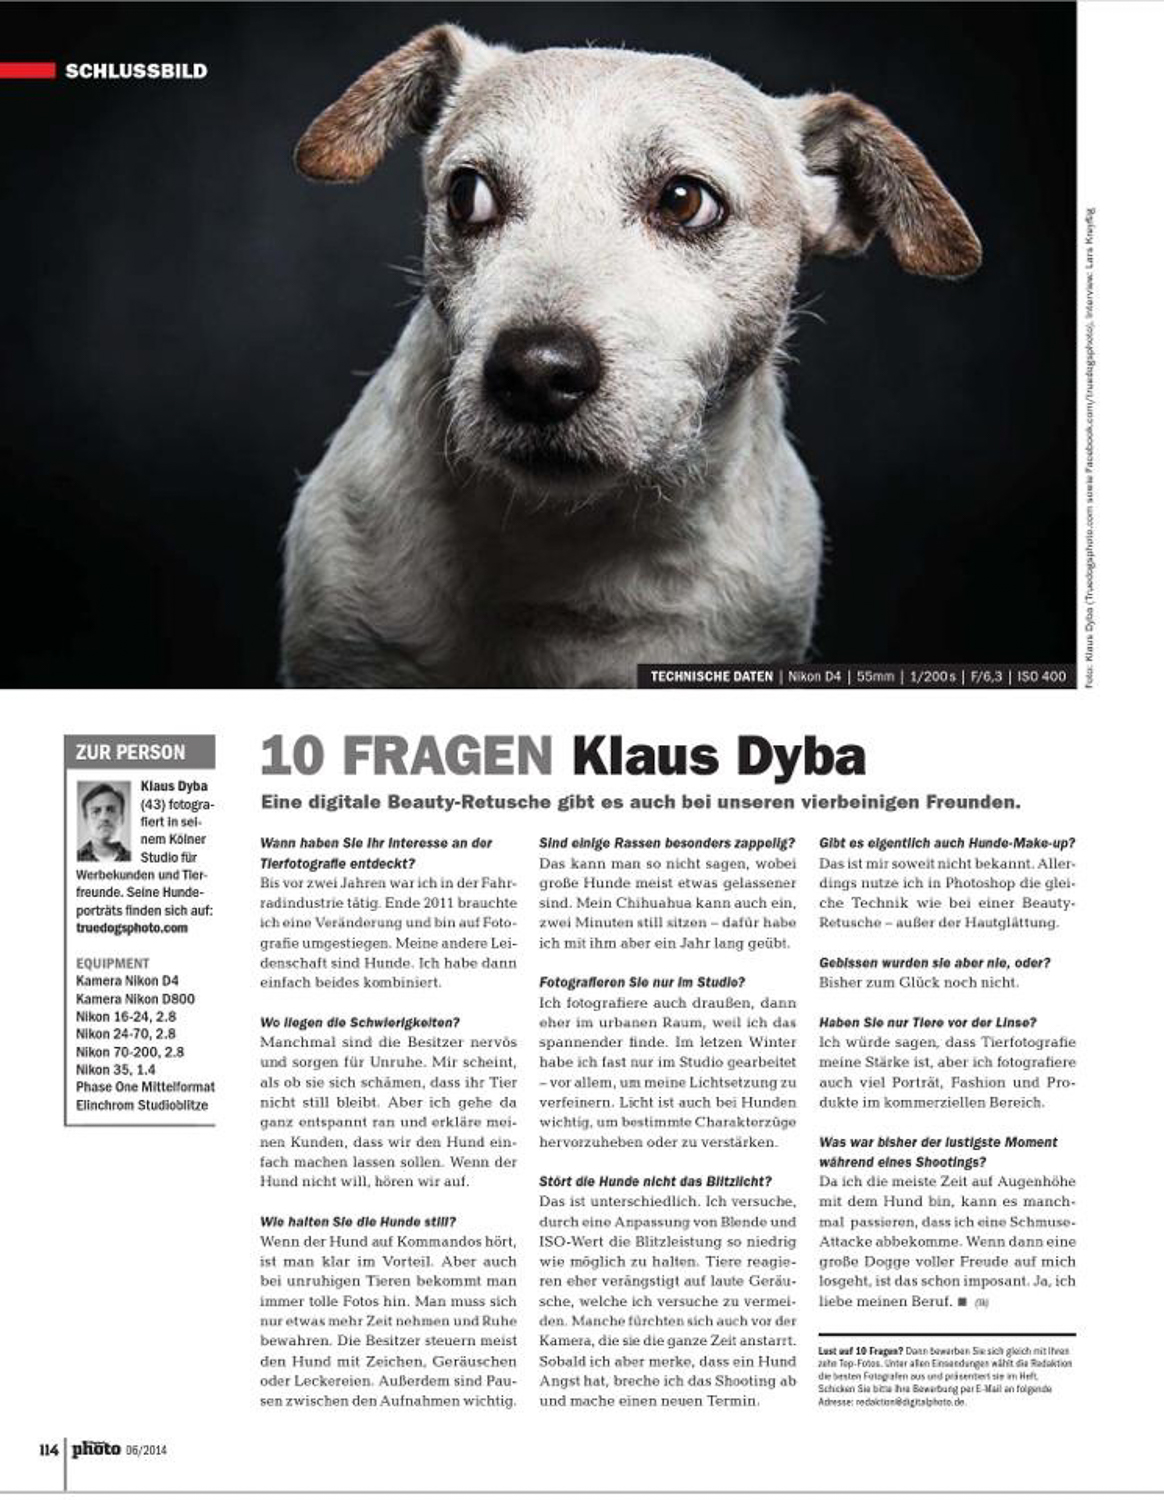 klaus-dyba-dog-photography-19.jpg